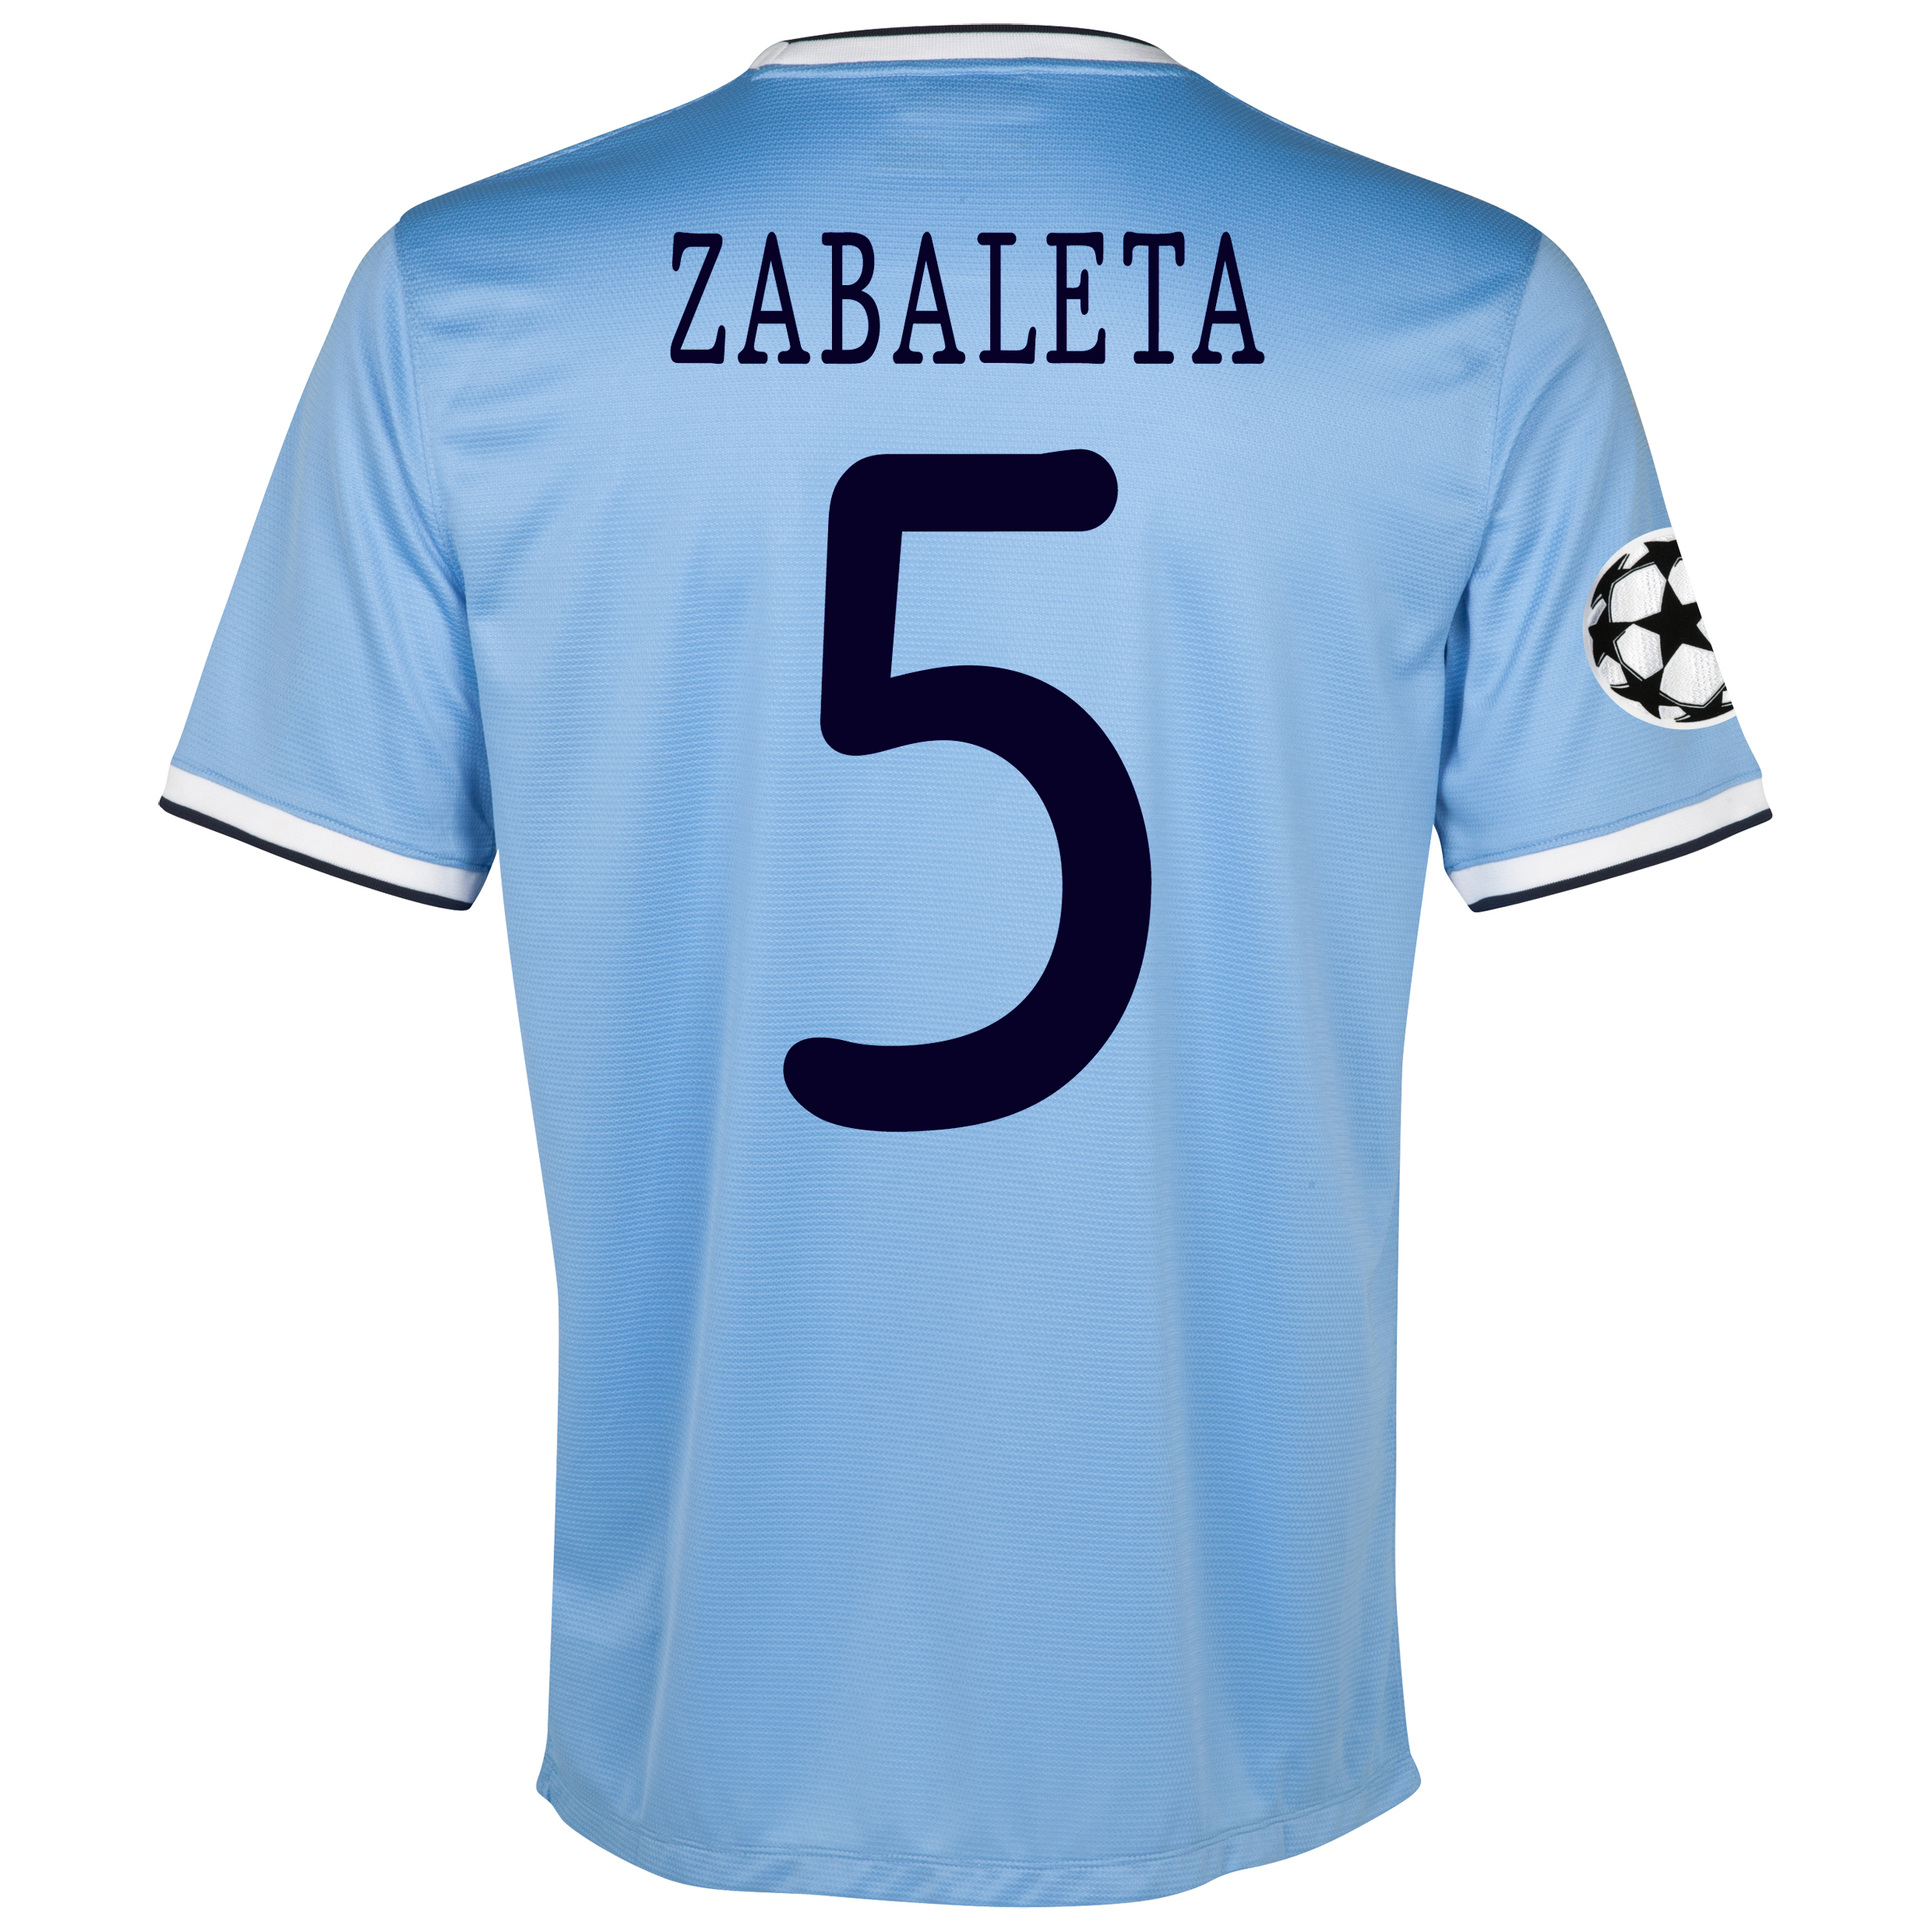 Manchester City UEFA Champions League Home Shirt 2013/14 with Zabaleta 5 printing